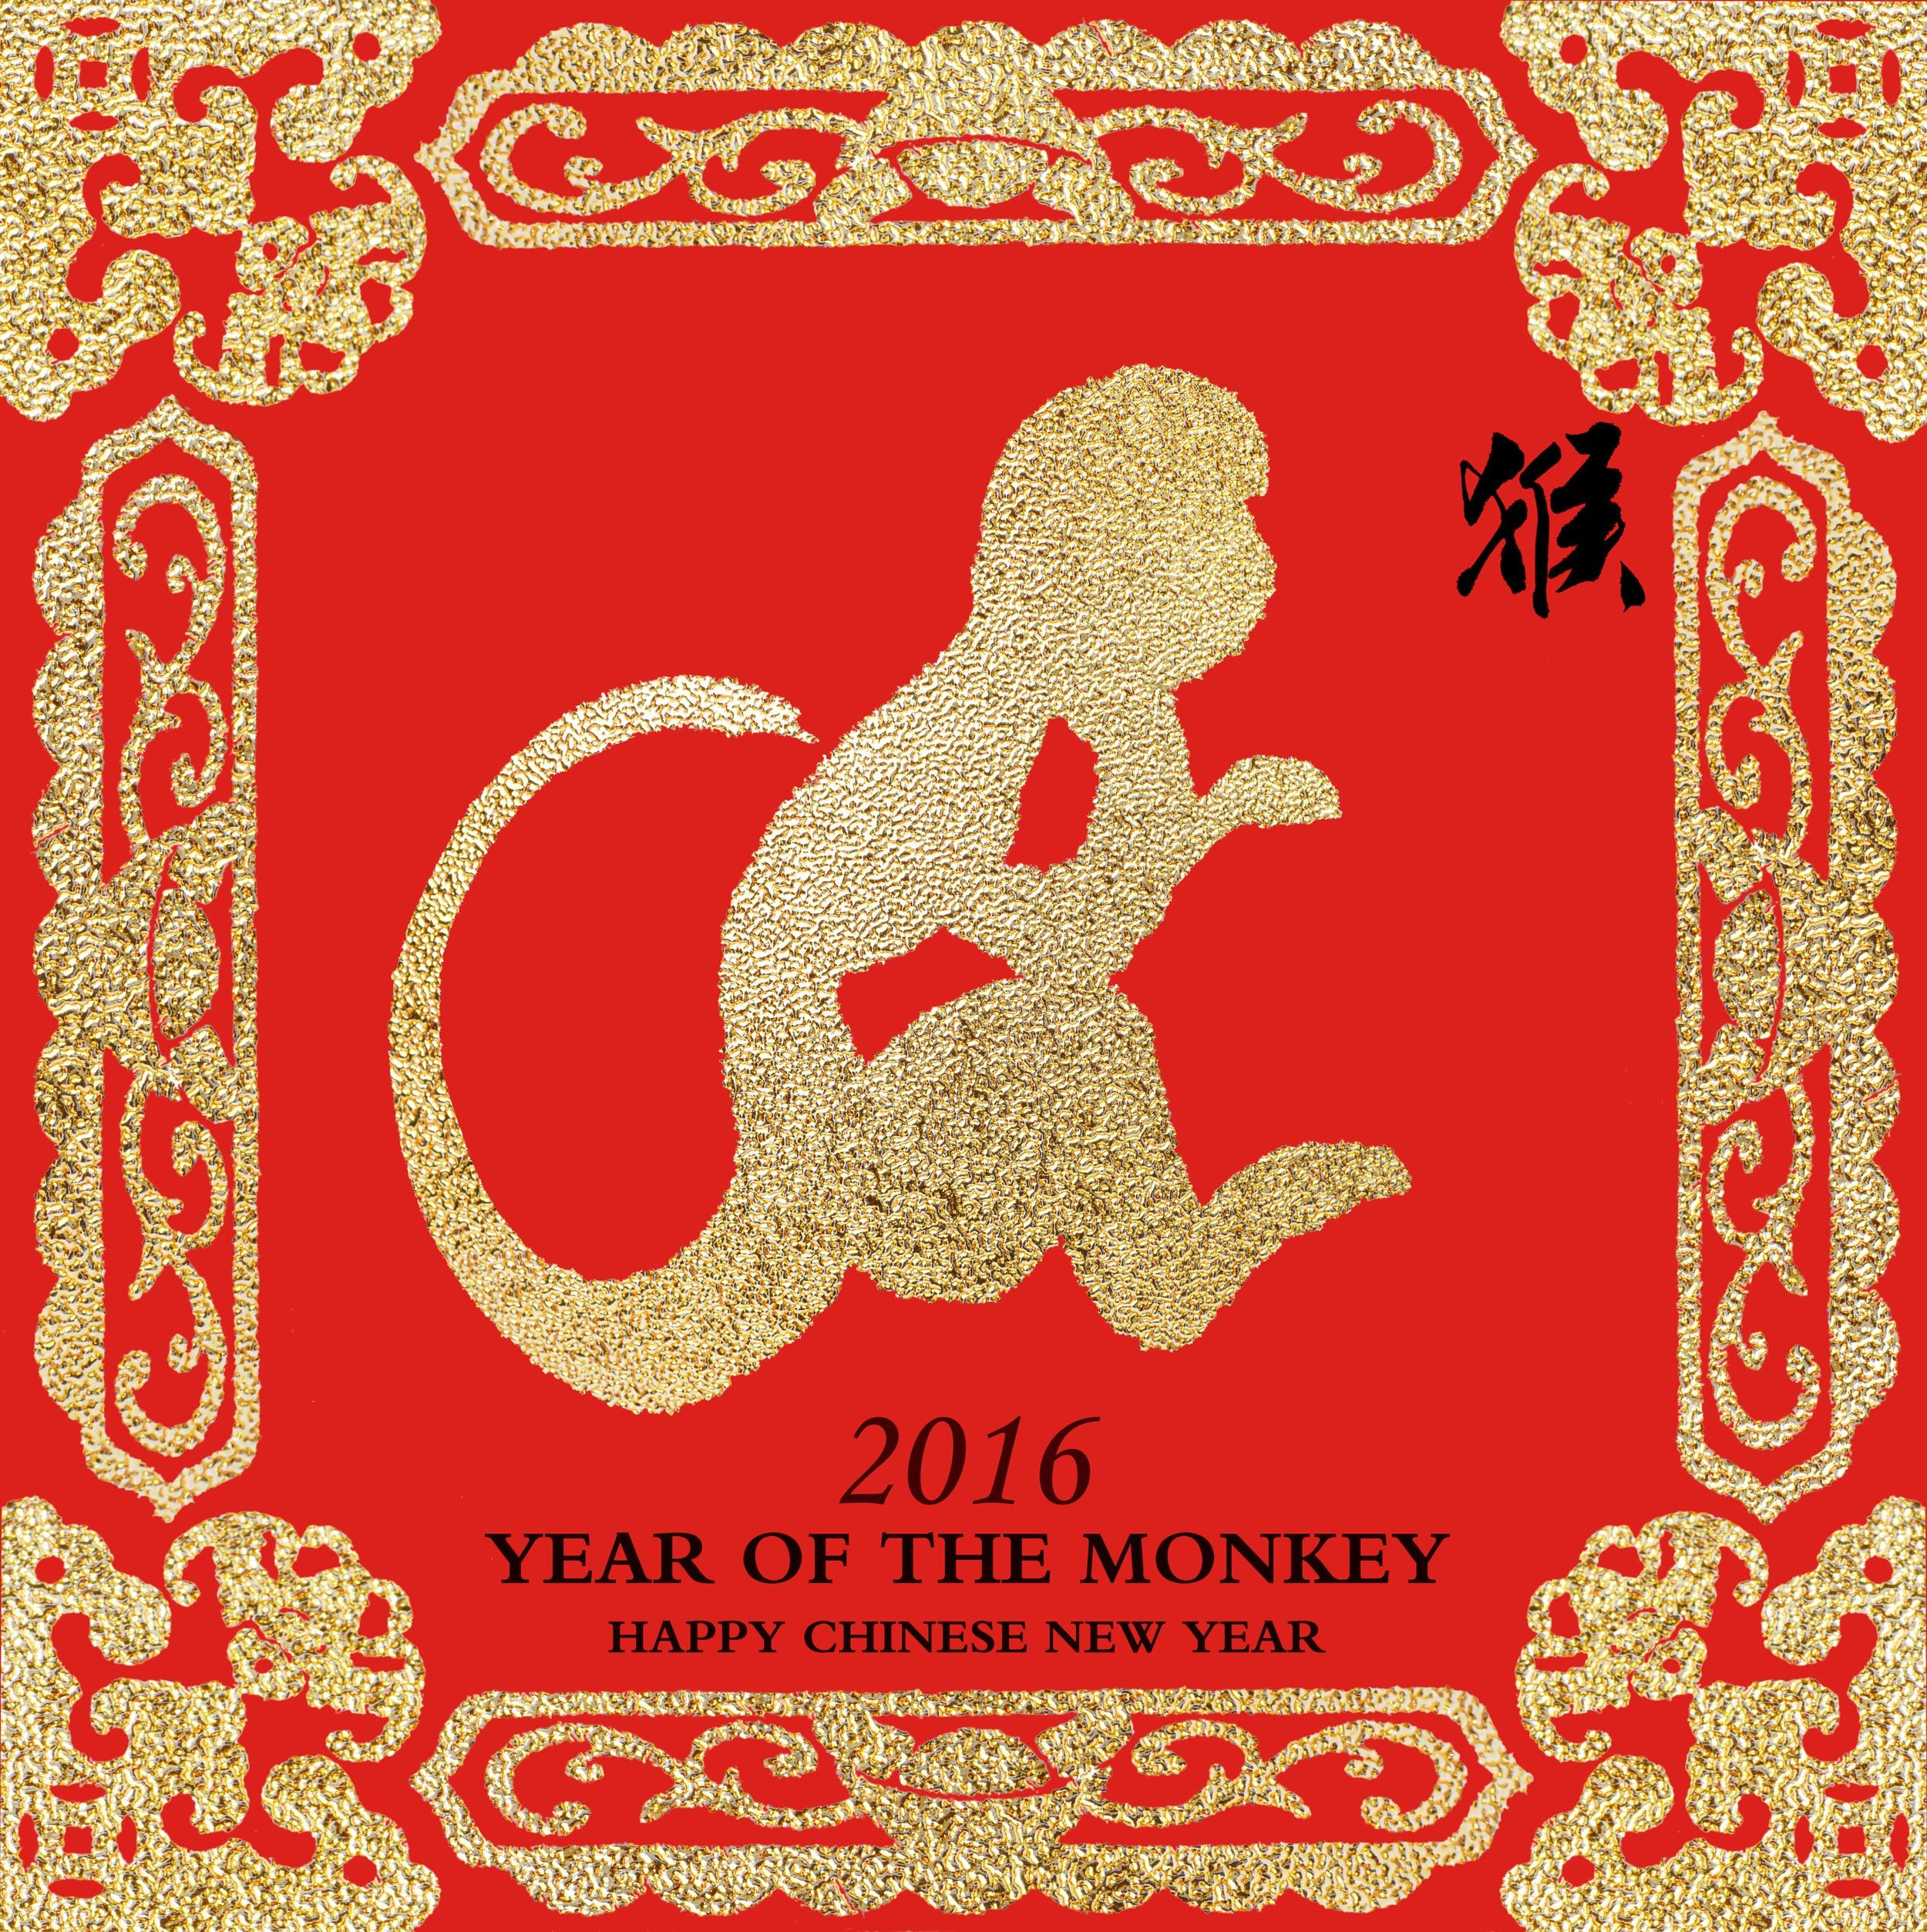 Chinese Zodiac for 2016: Year of the Fire Monkey